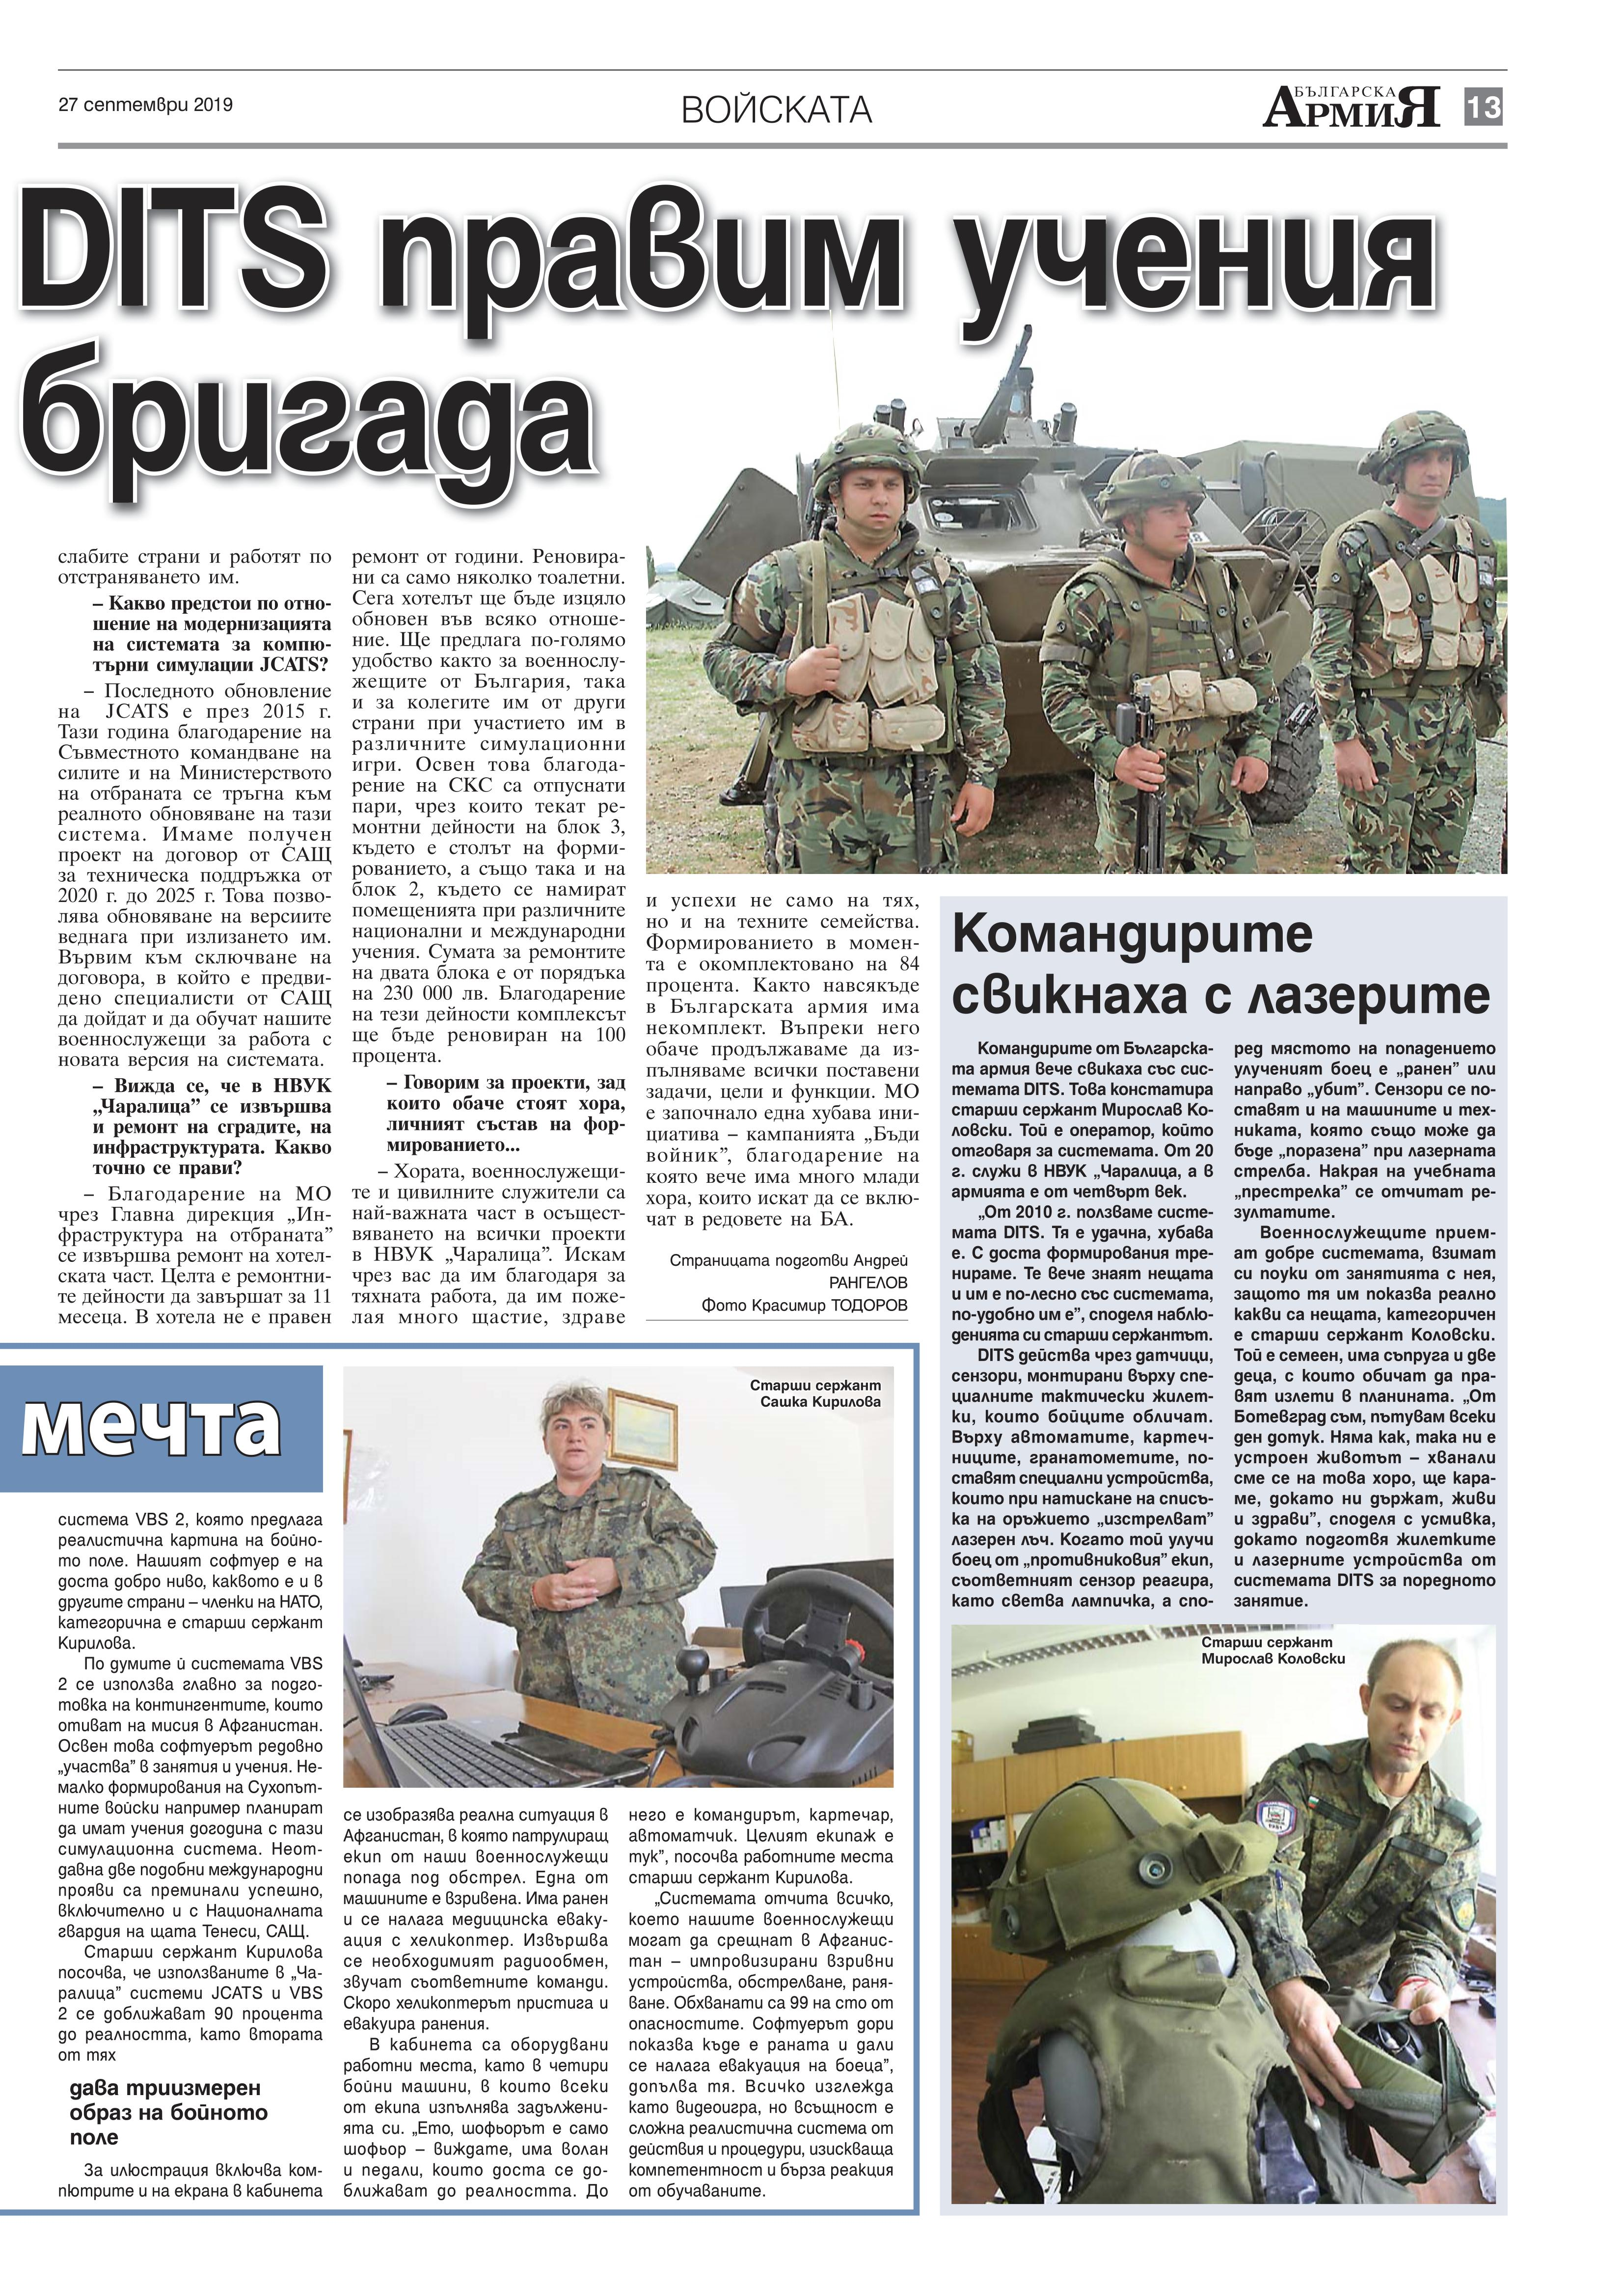 https://www.armymedia.bg/wp-content/uploads/2015/06/13.page1_-110.jpg